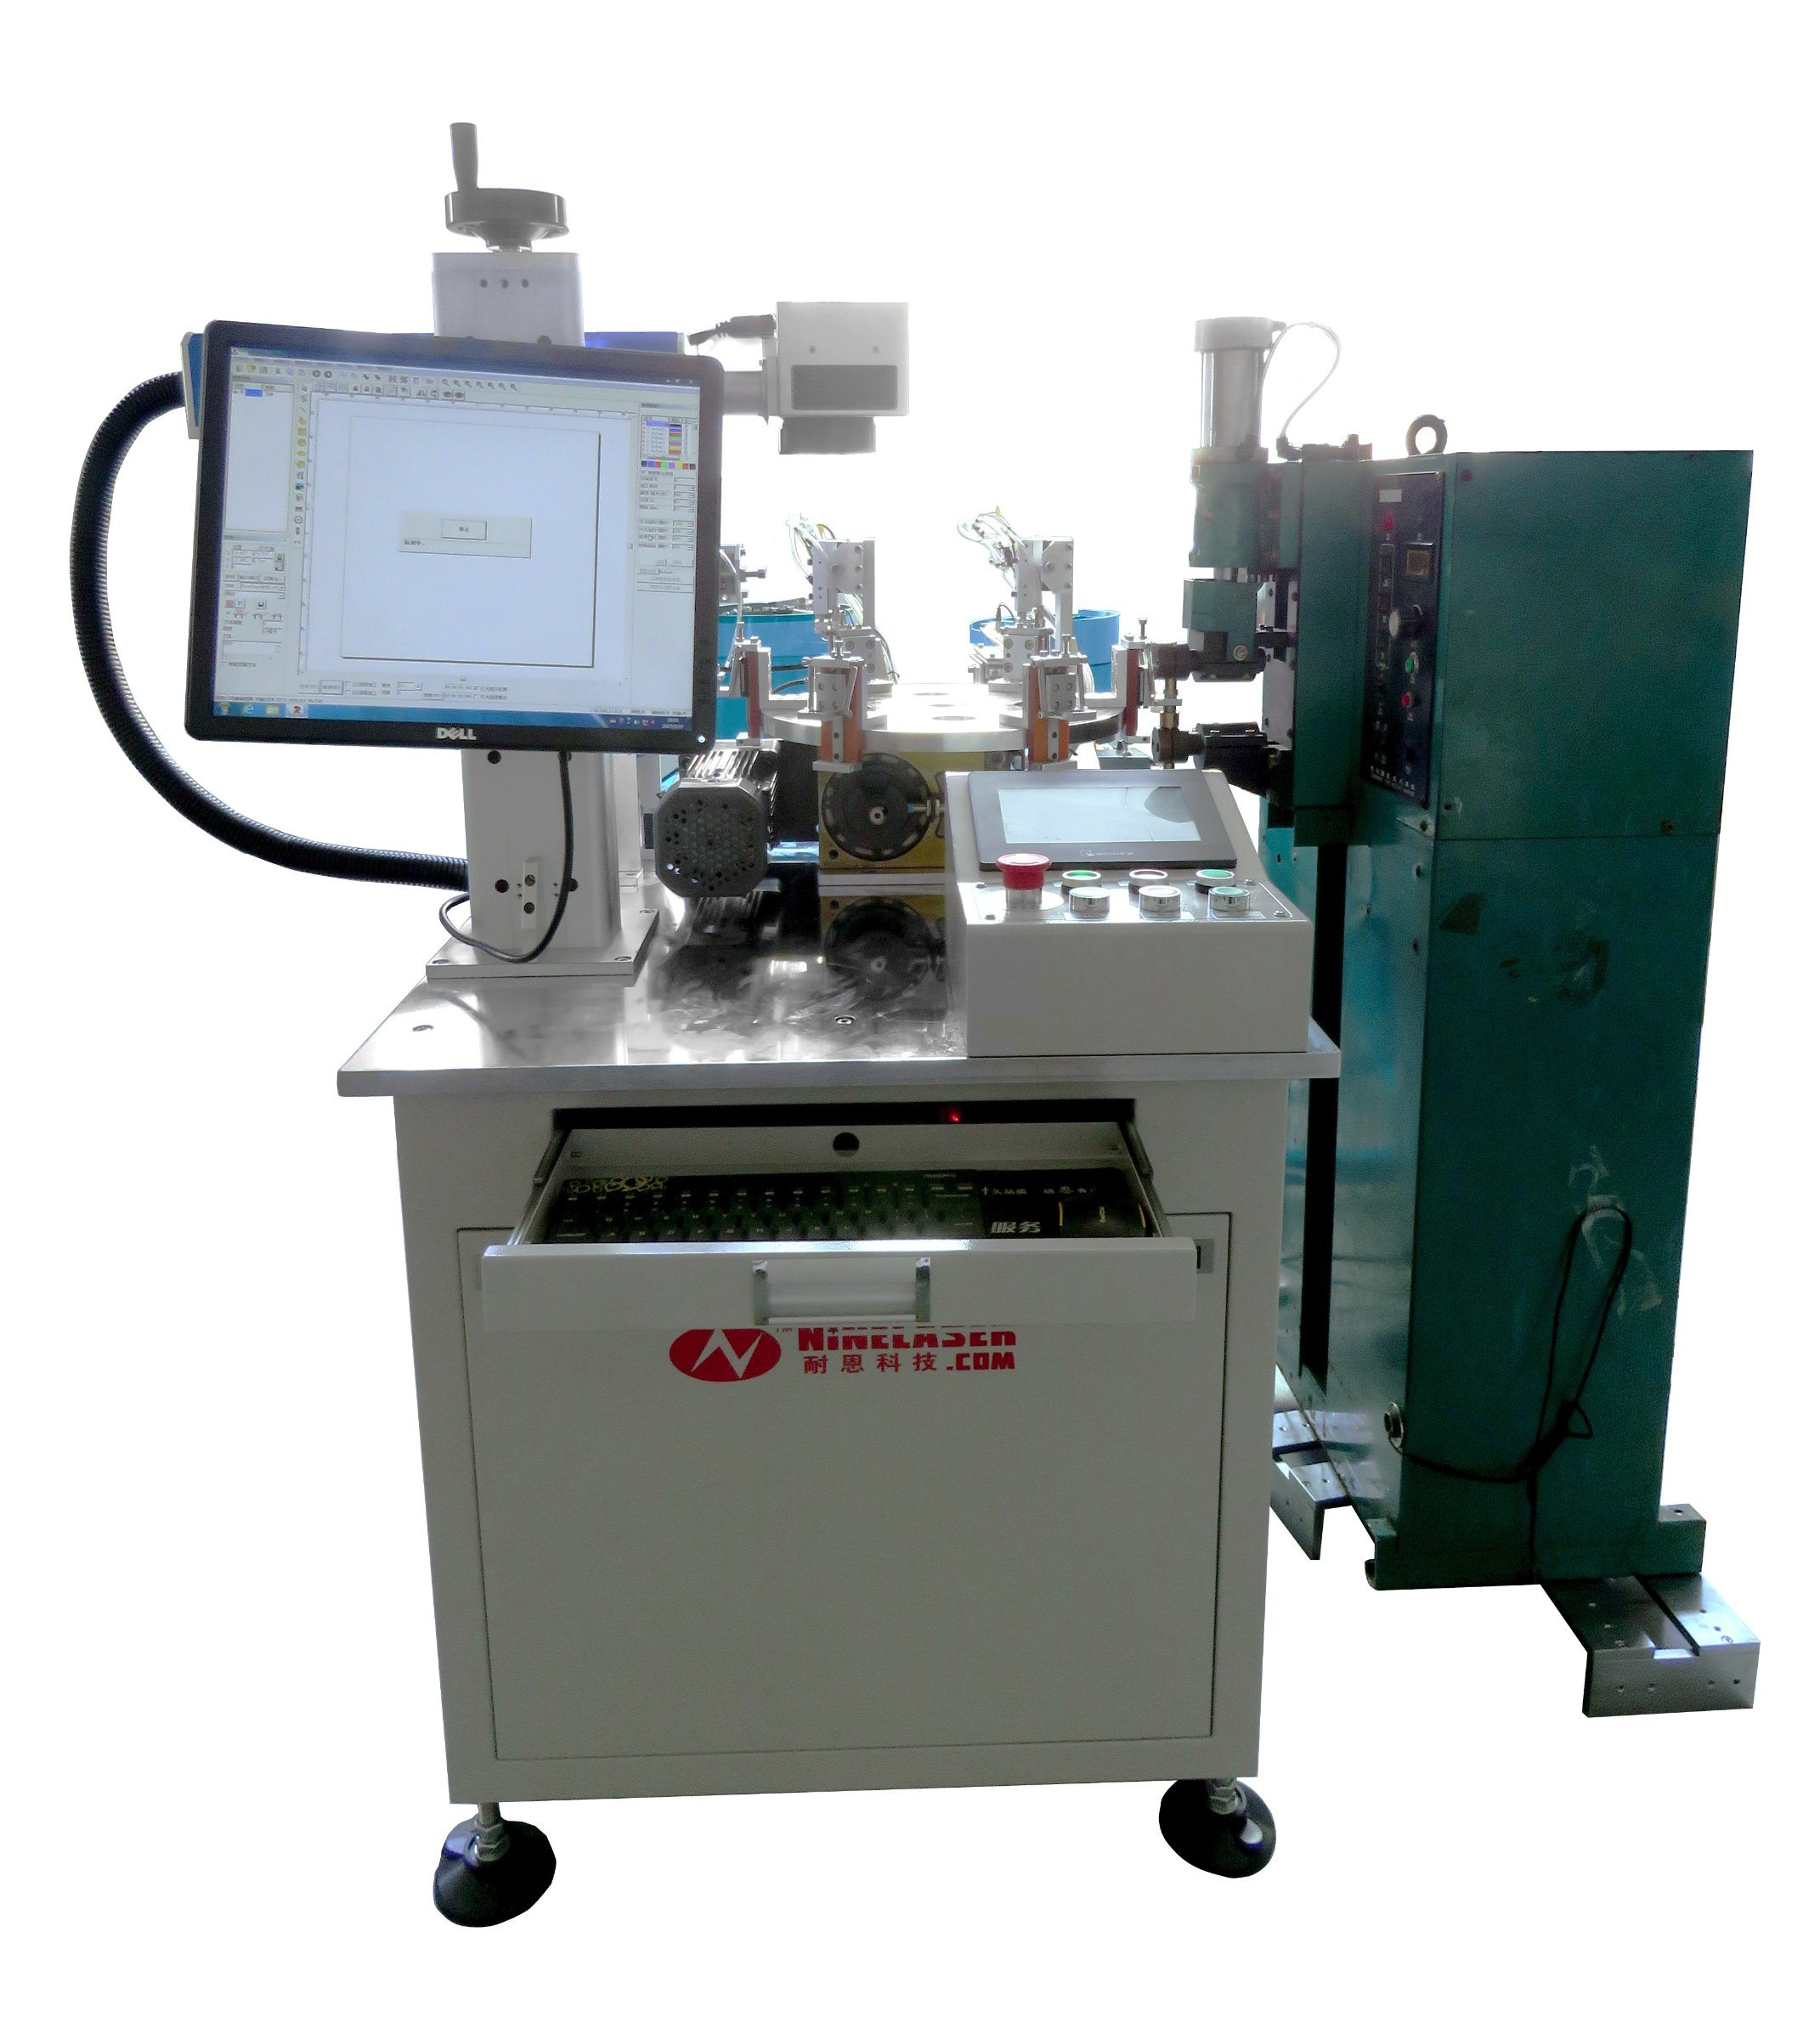 Automatic Laser Welding and Engraving Machine for Sodering and Marking Motor Shell Cases